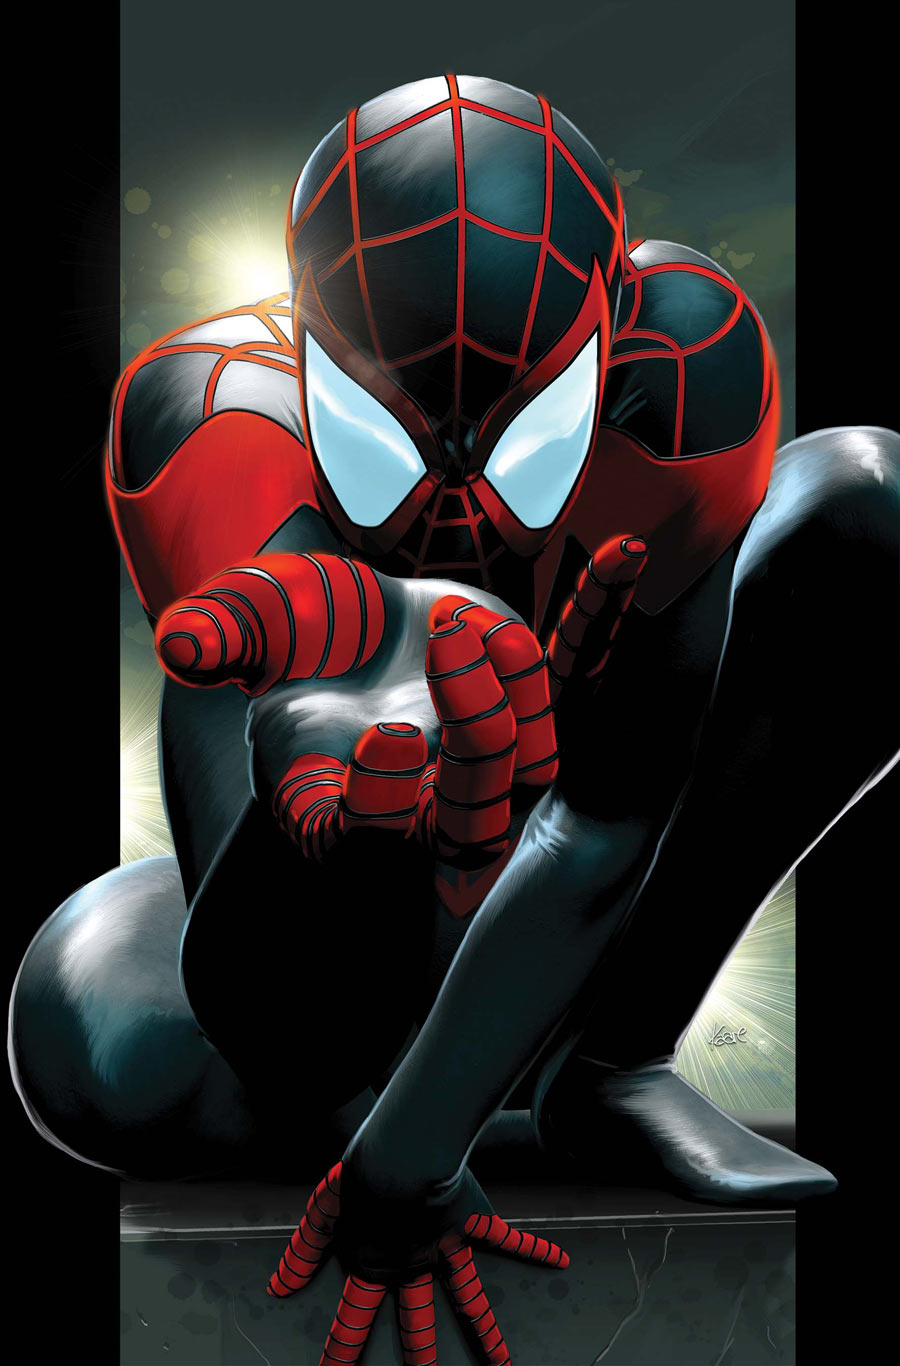 Ultimate spider man comic - photo#5